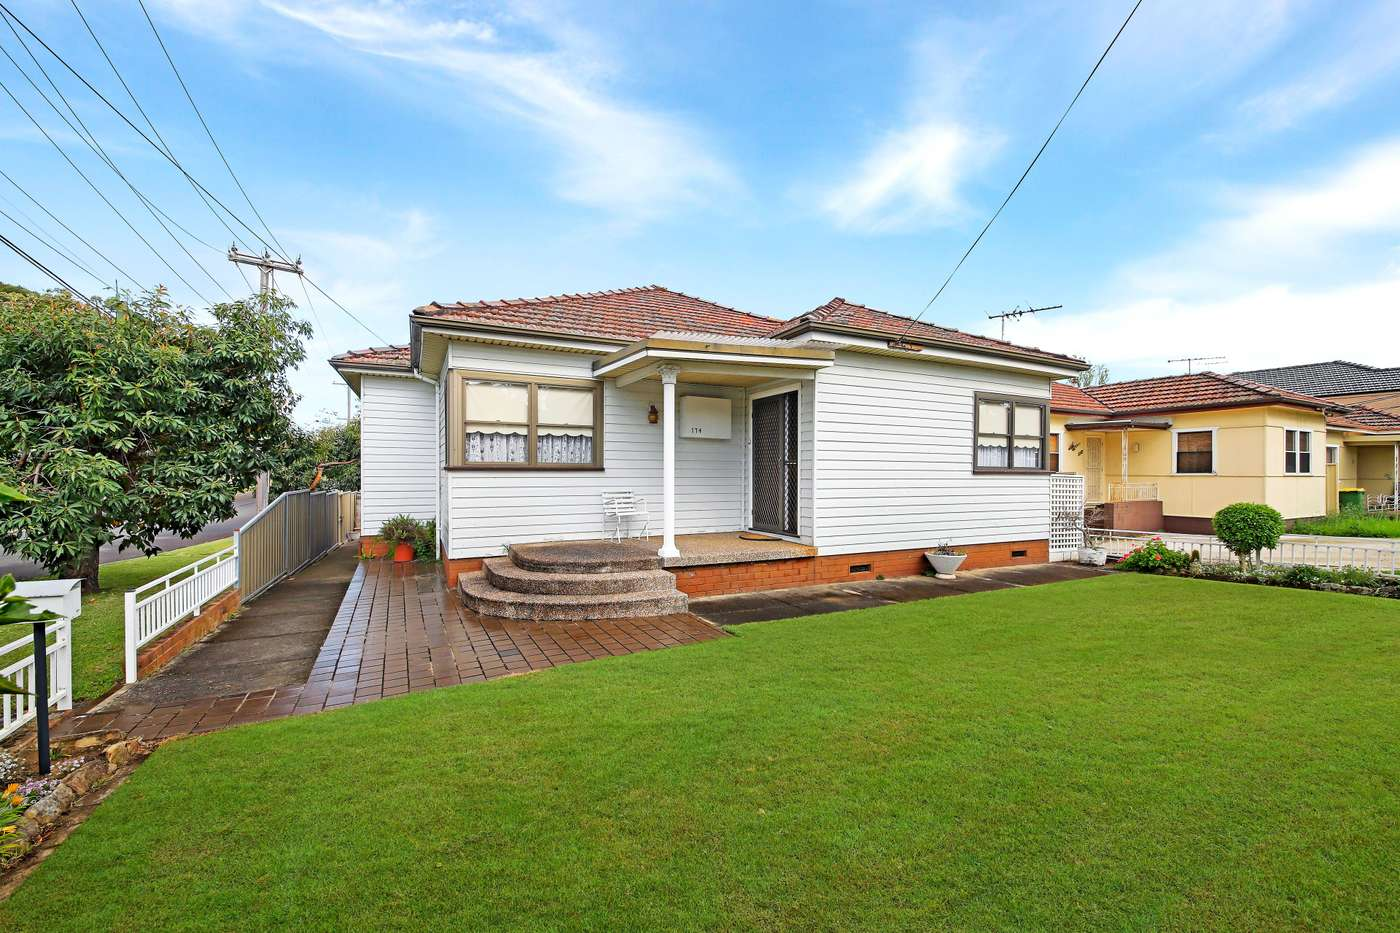 Main view of Homely house listing, 174 Cooper Road, Yagoona, NSW 2199